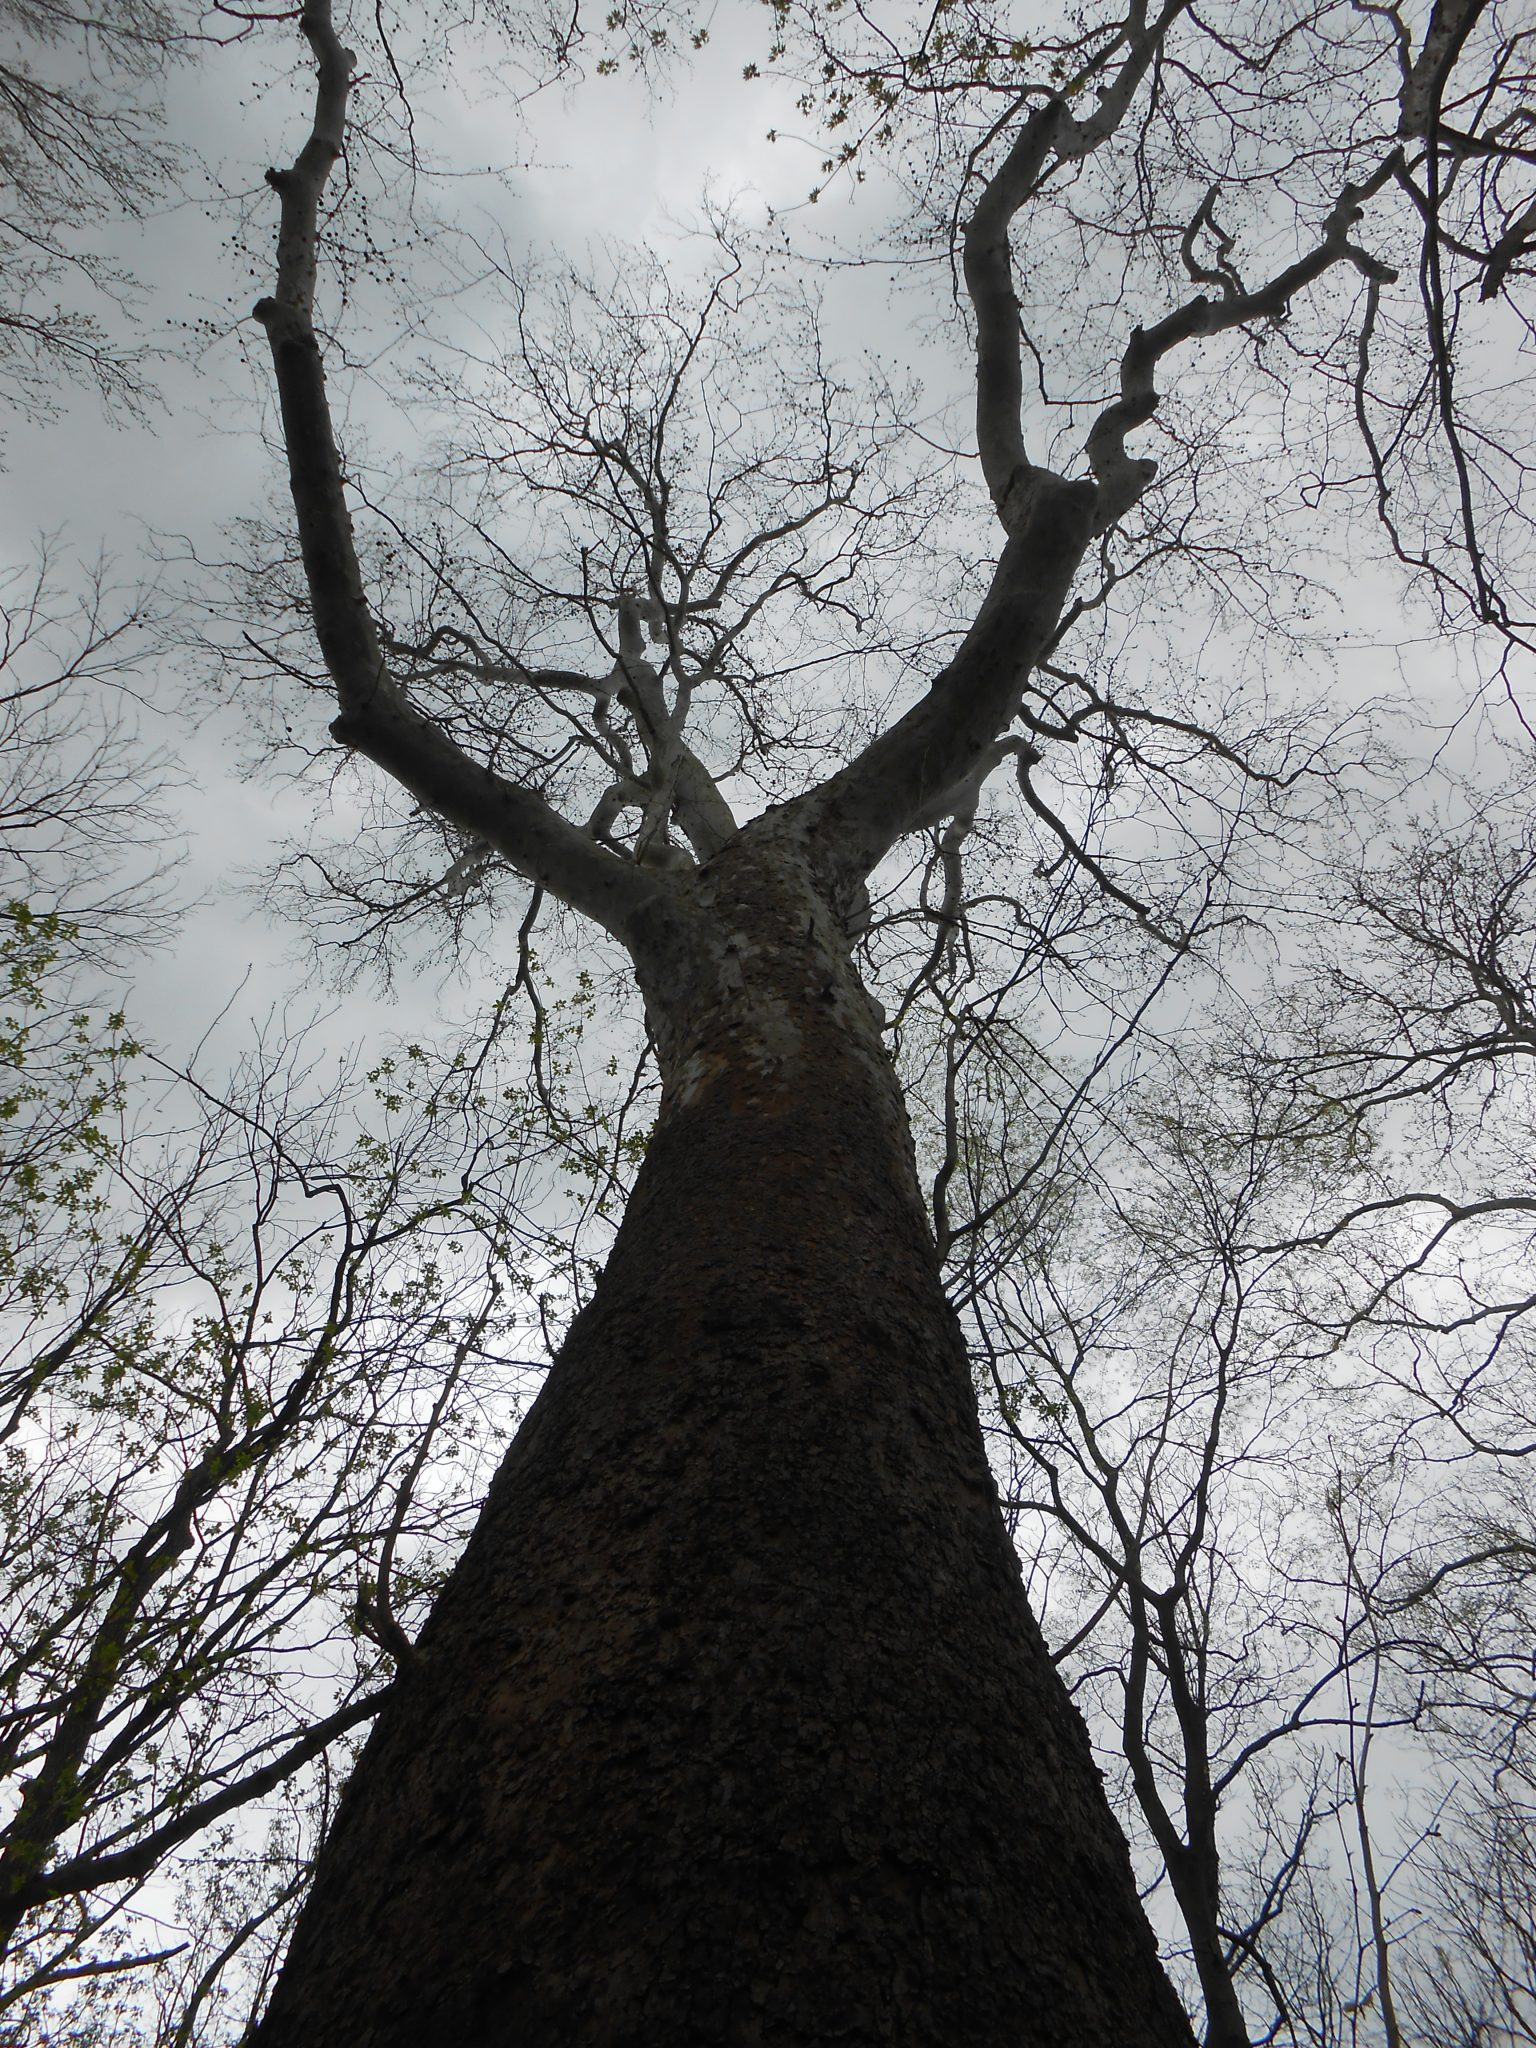 Large sycamore in a floodplain forest along the Potomac